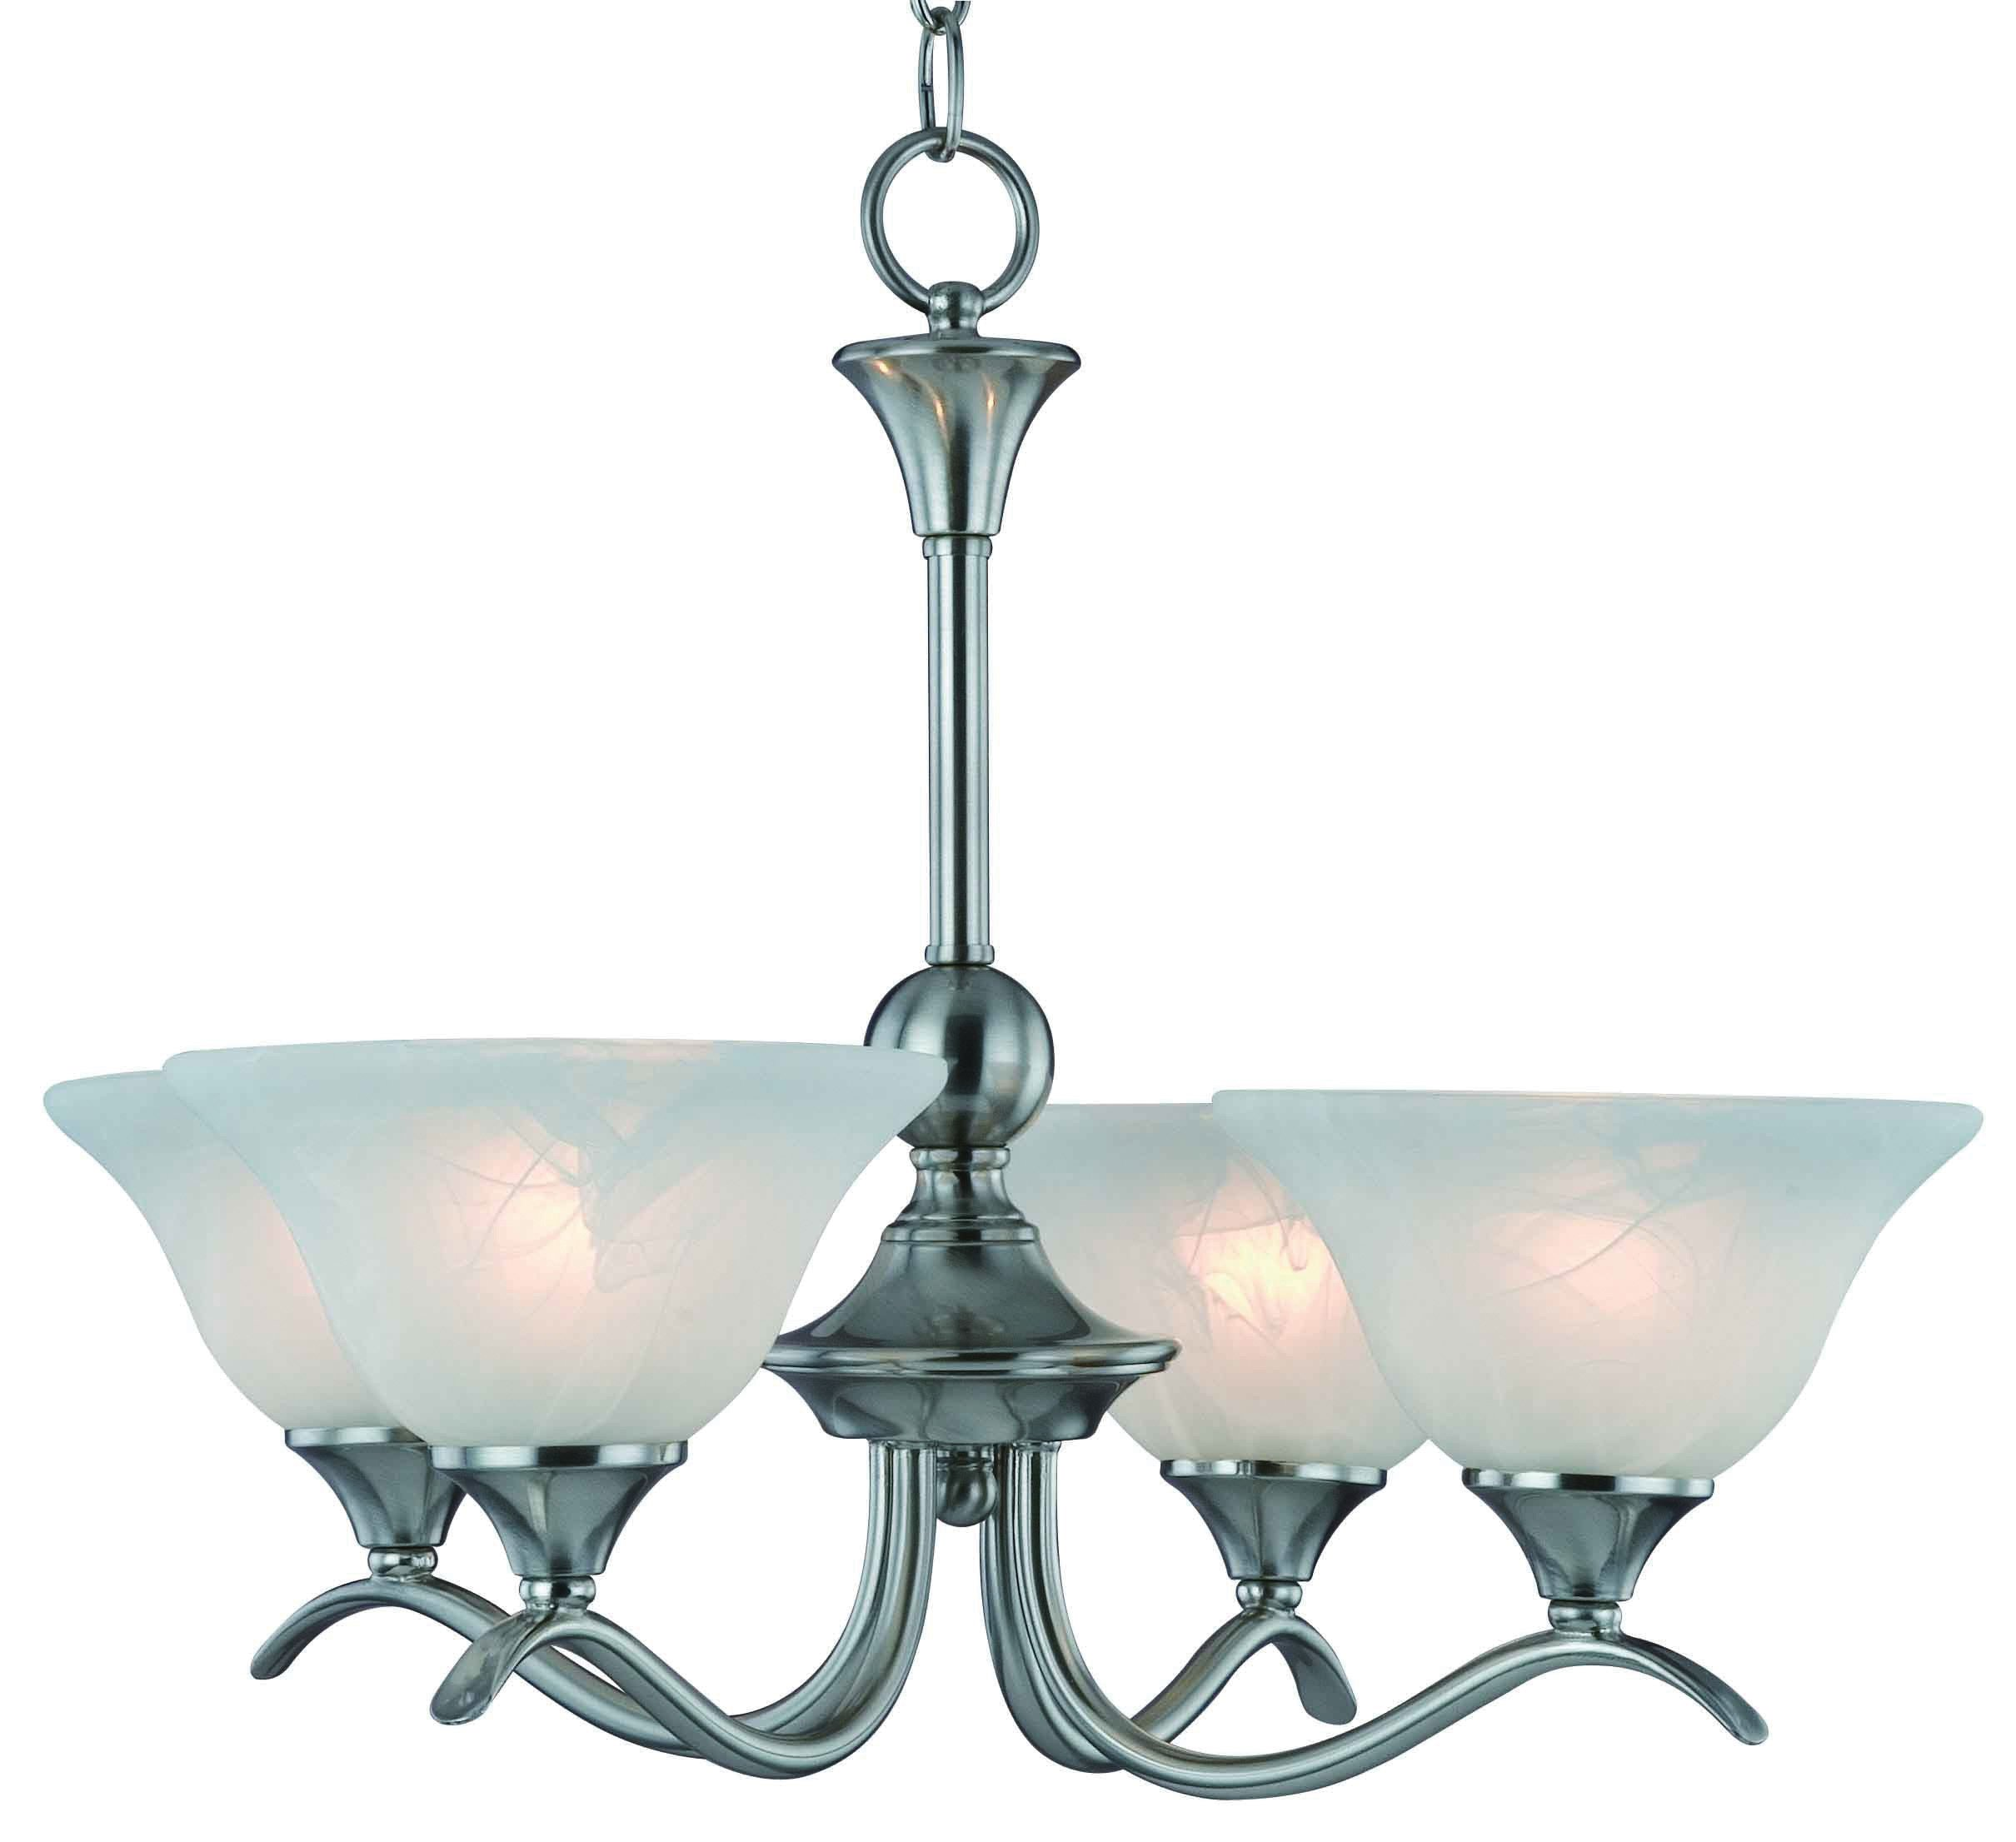 Hardware House H10-4029 Dover Chandelier, 22'' x 22'' x 17'', Satin Nickel by Hardware House